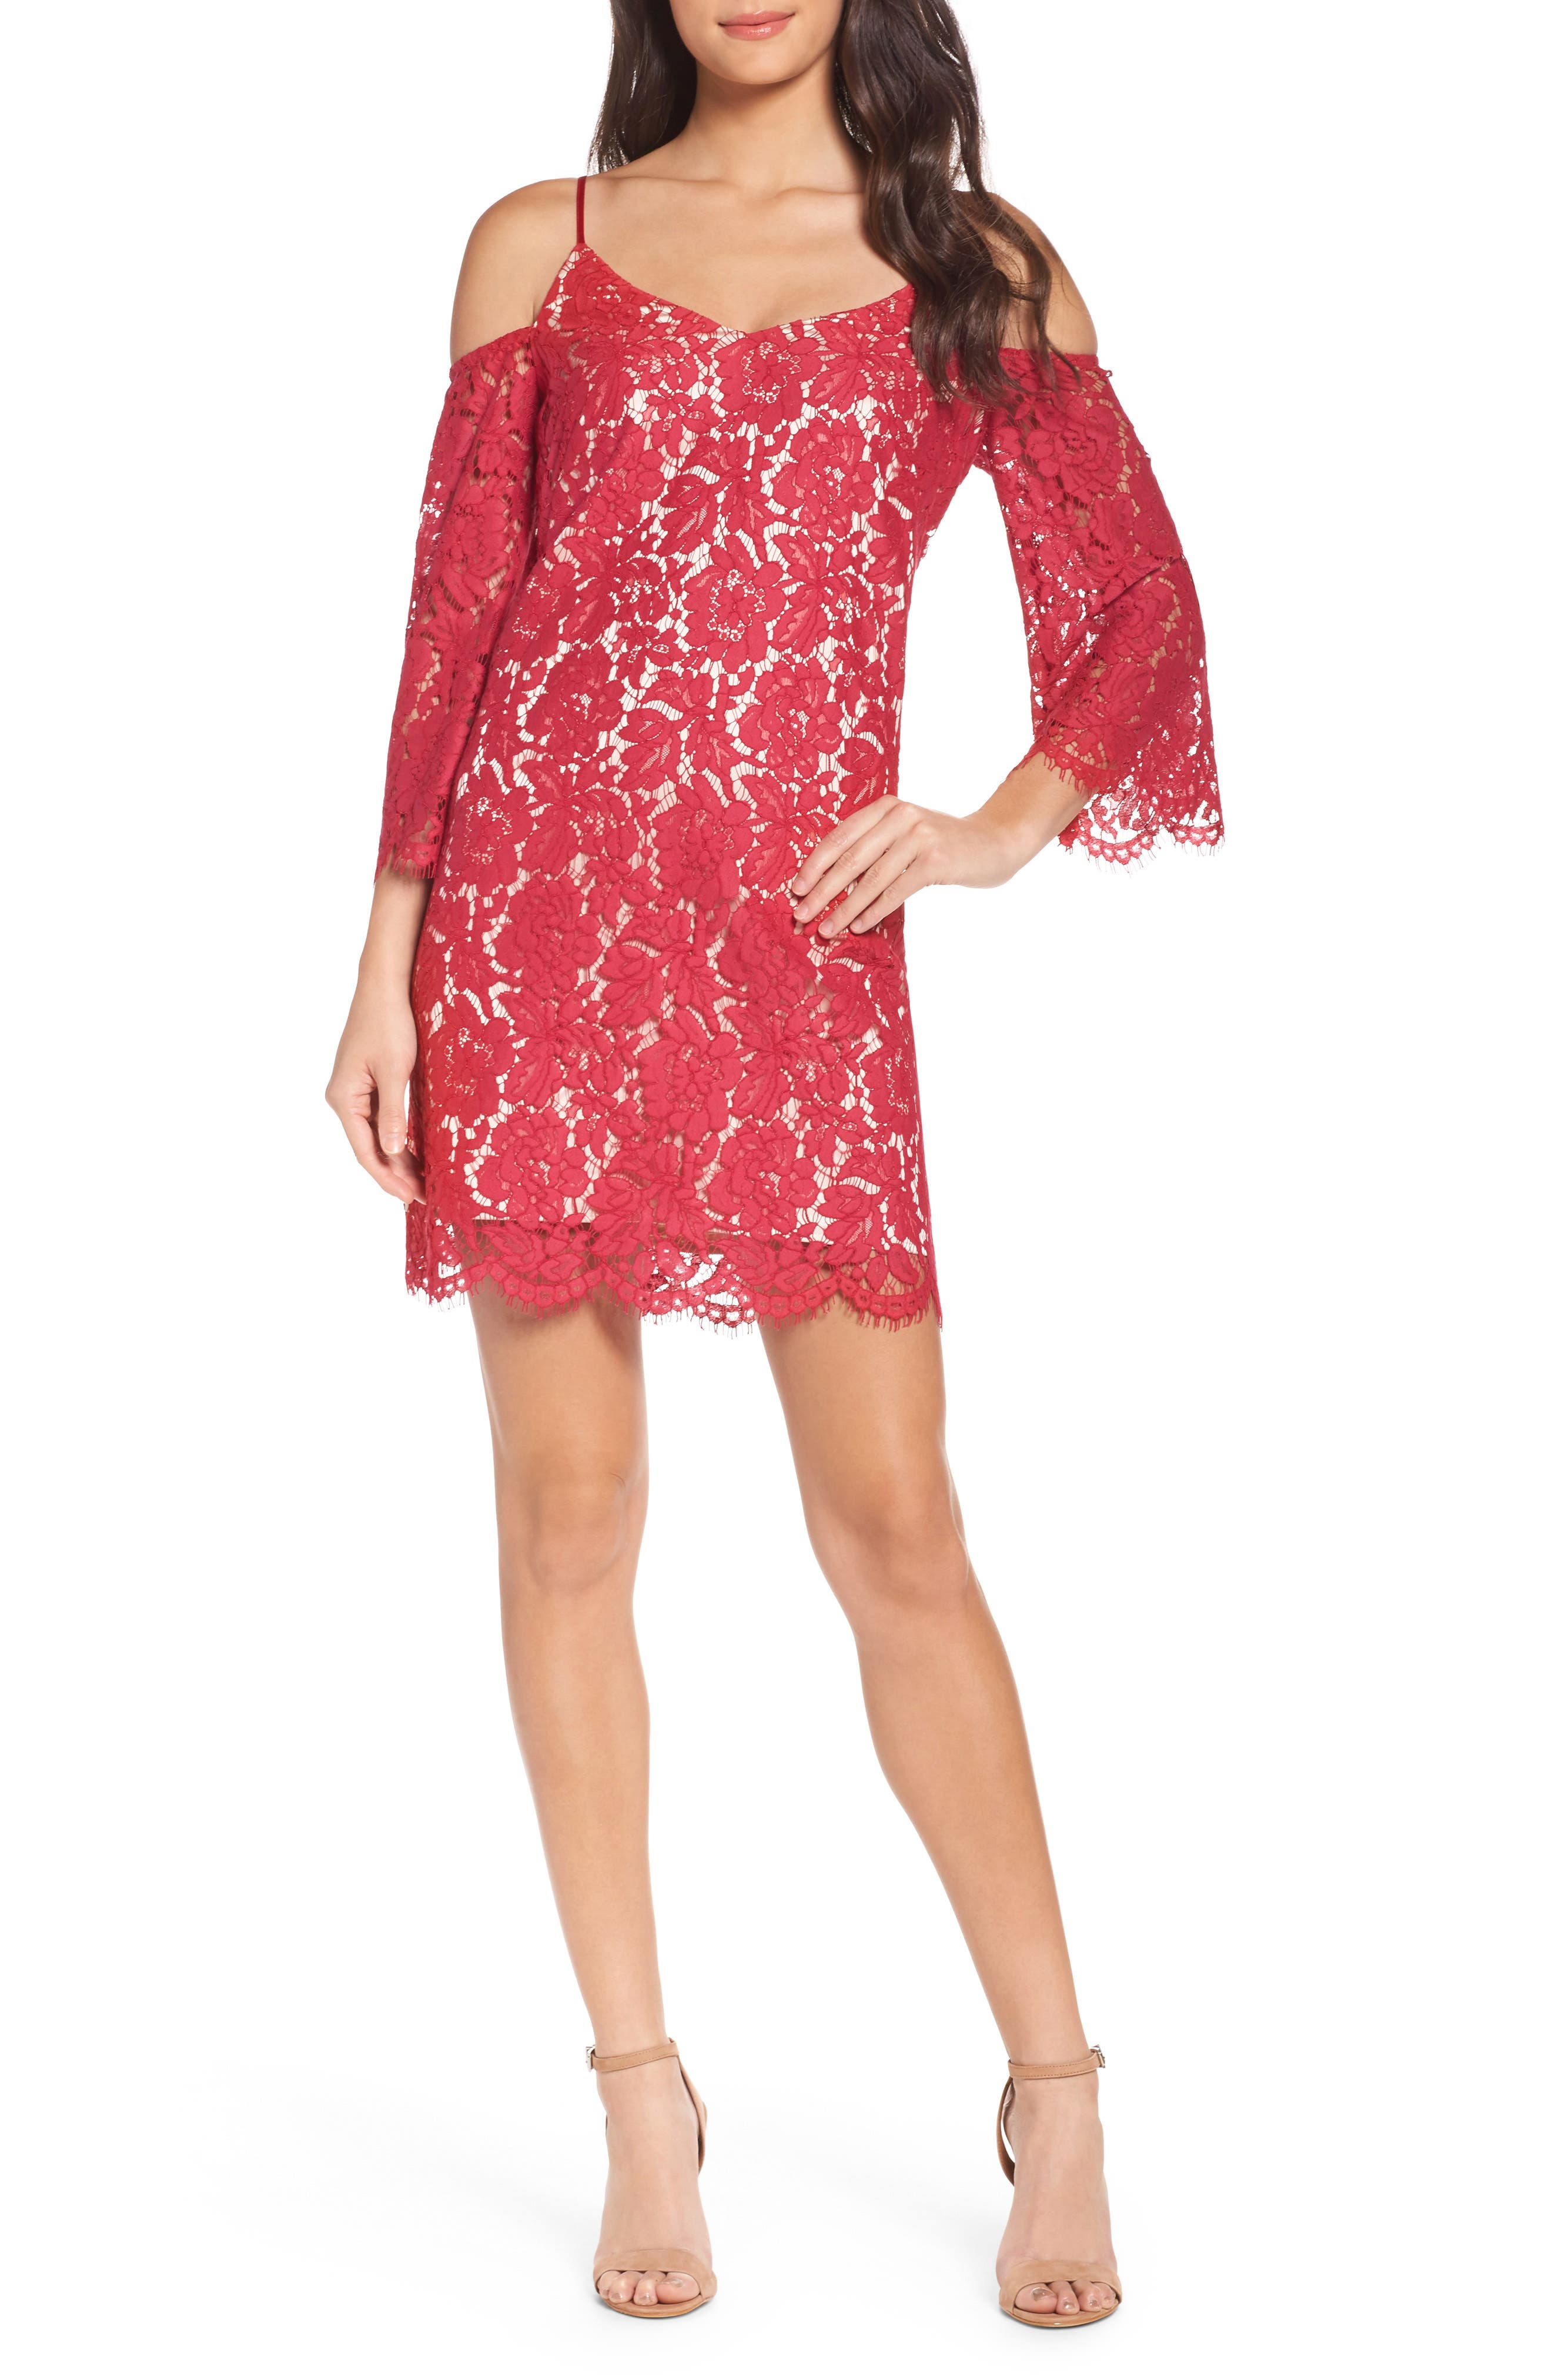 Main Image - Chelsea28 Cold Shoulder Lace Shift Dress